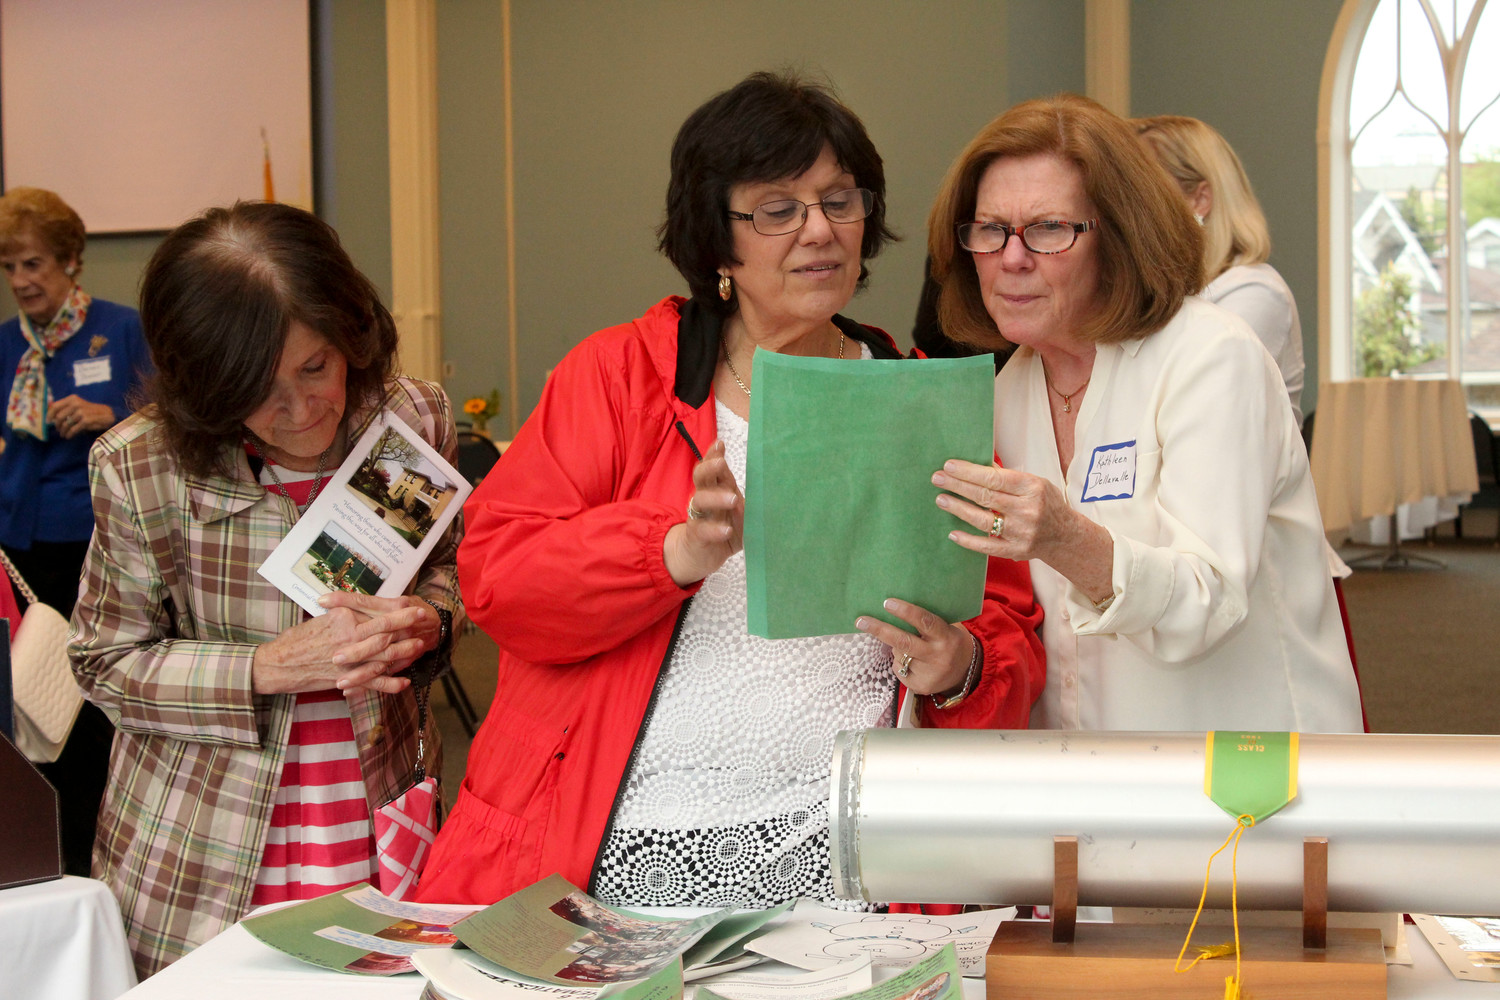 St. Agnes teachers Lorraine Mayo and Kathleen Dellavalle inspected the contents of a time capsule sealed 25 years ago.